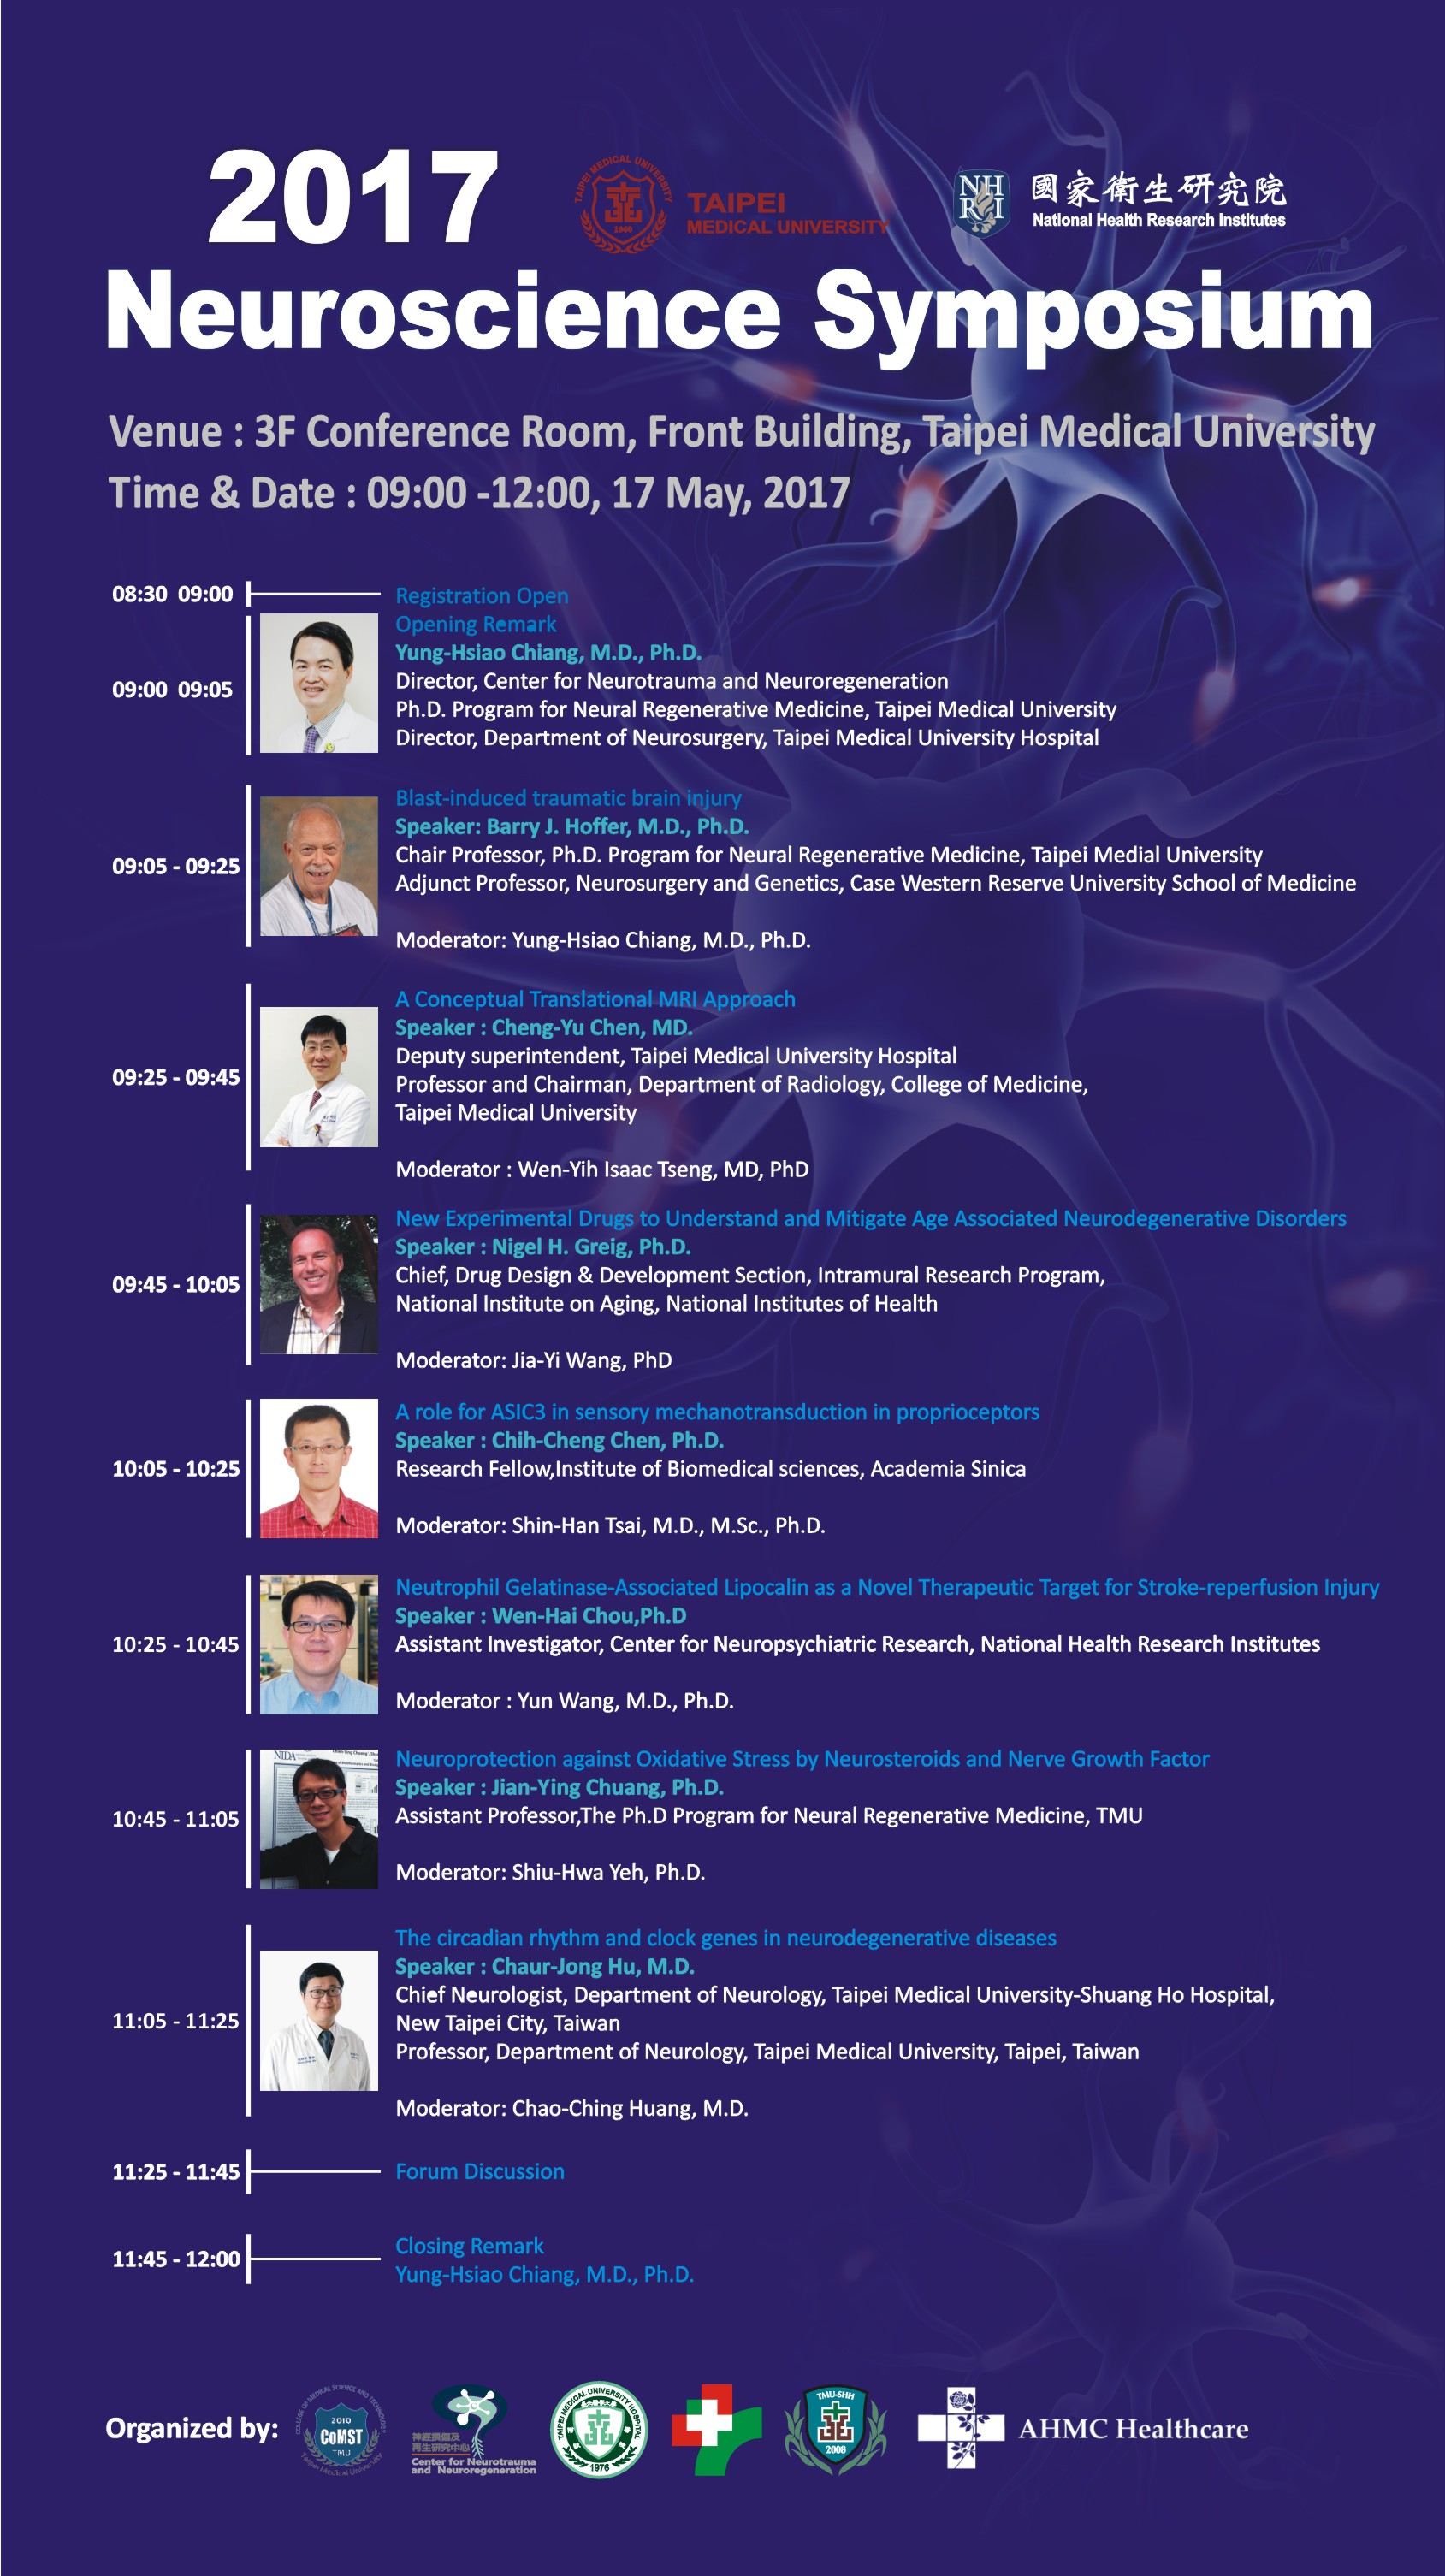 2017 Neuroscience Symposium